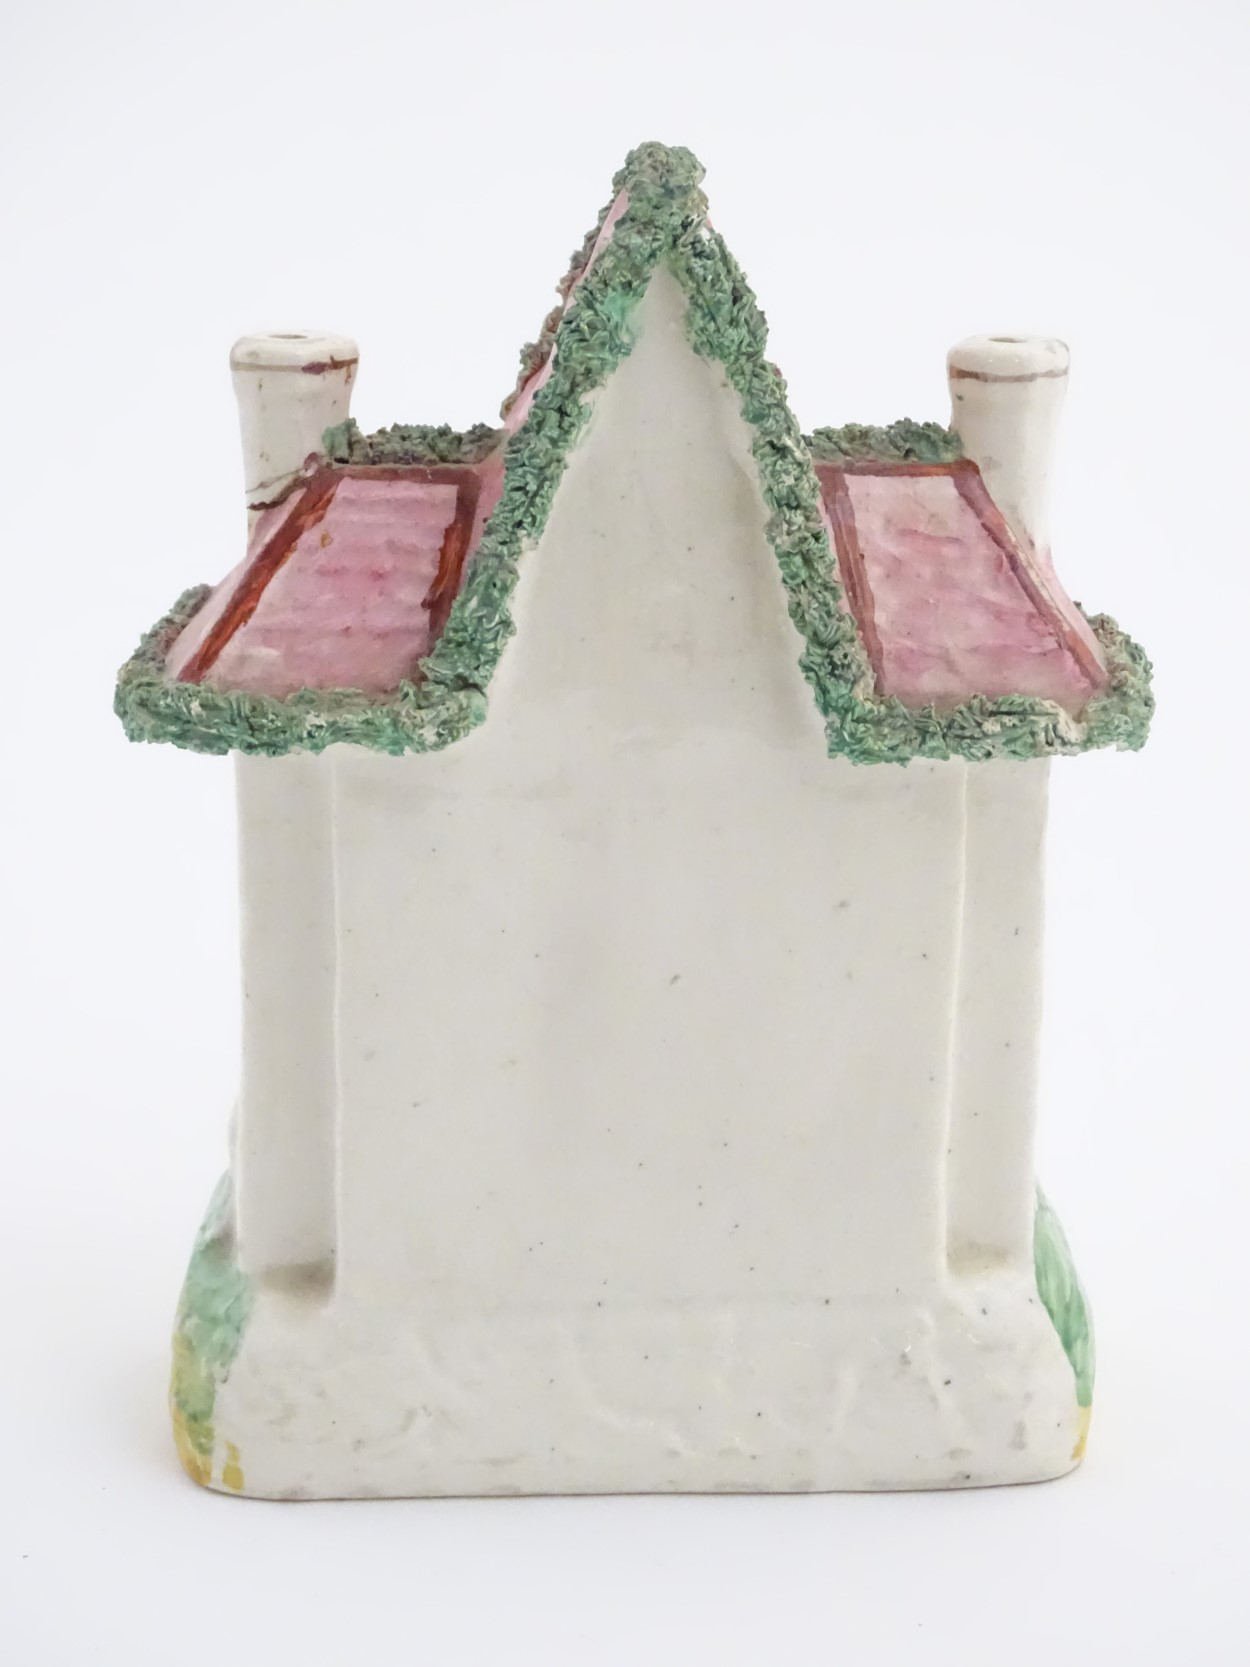 """Lot 52 - A Staffordshire pottery model of a flat back house. Approx. 8 ½"""" high x 6"""" wide."""